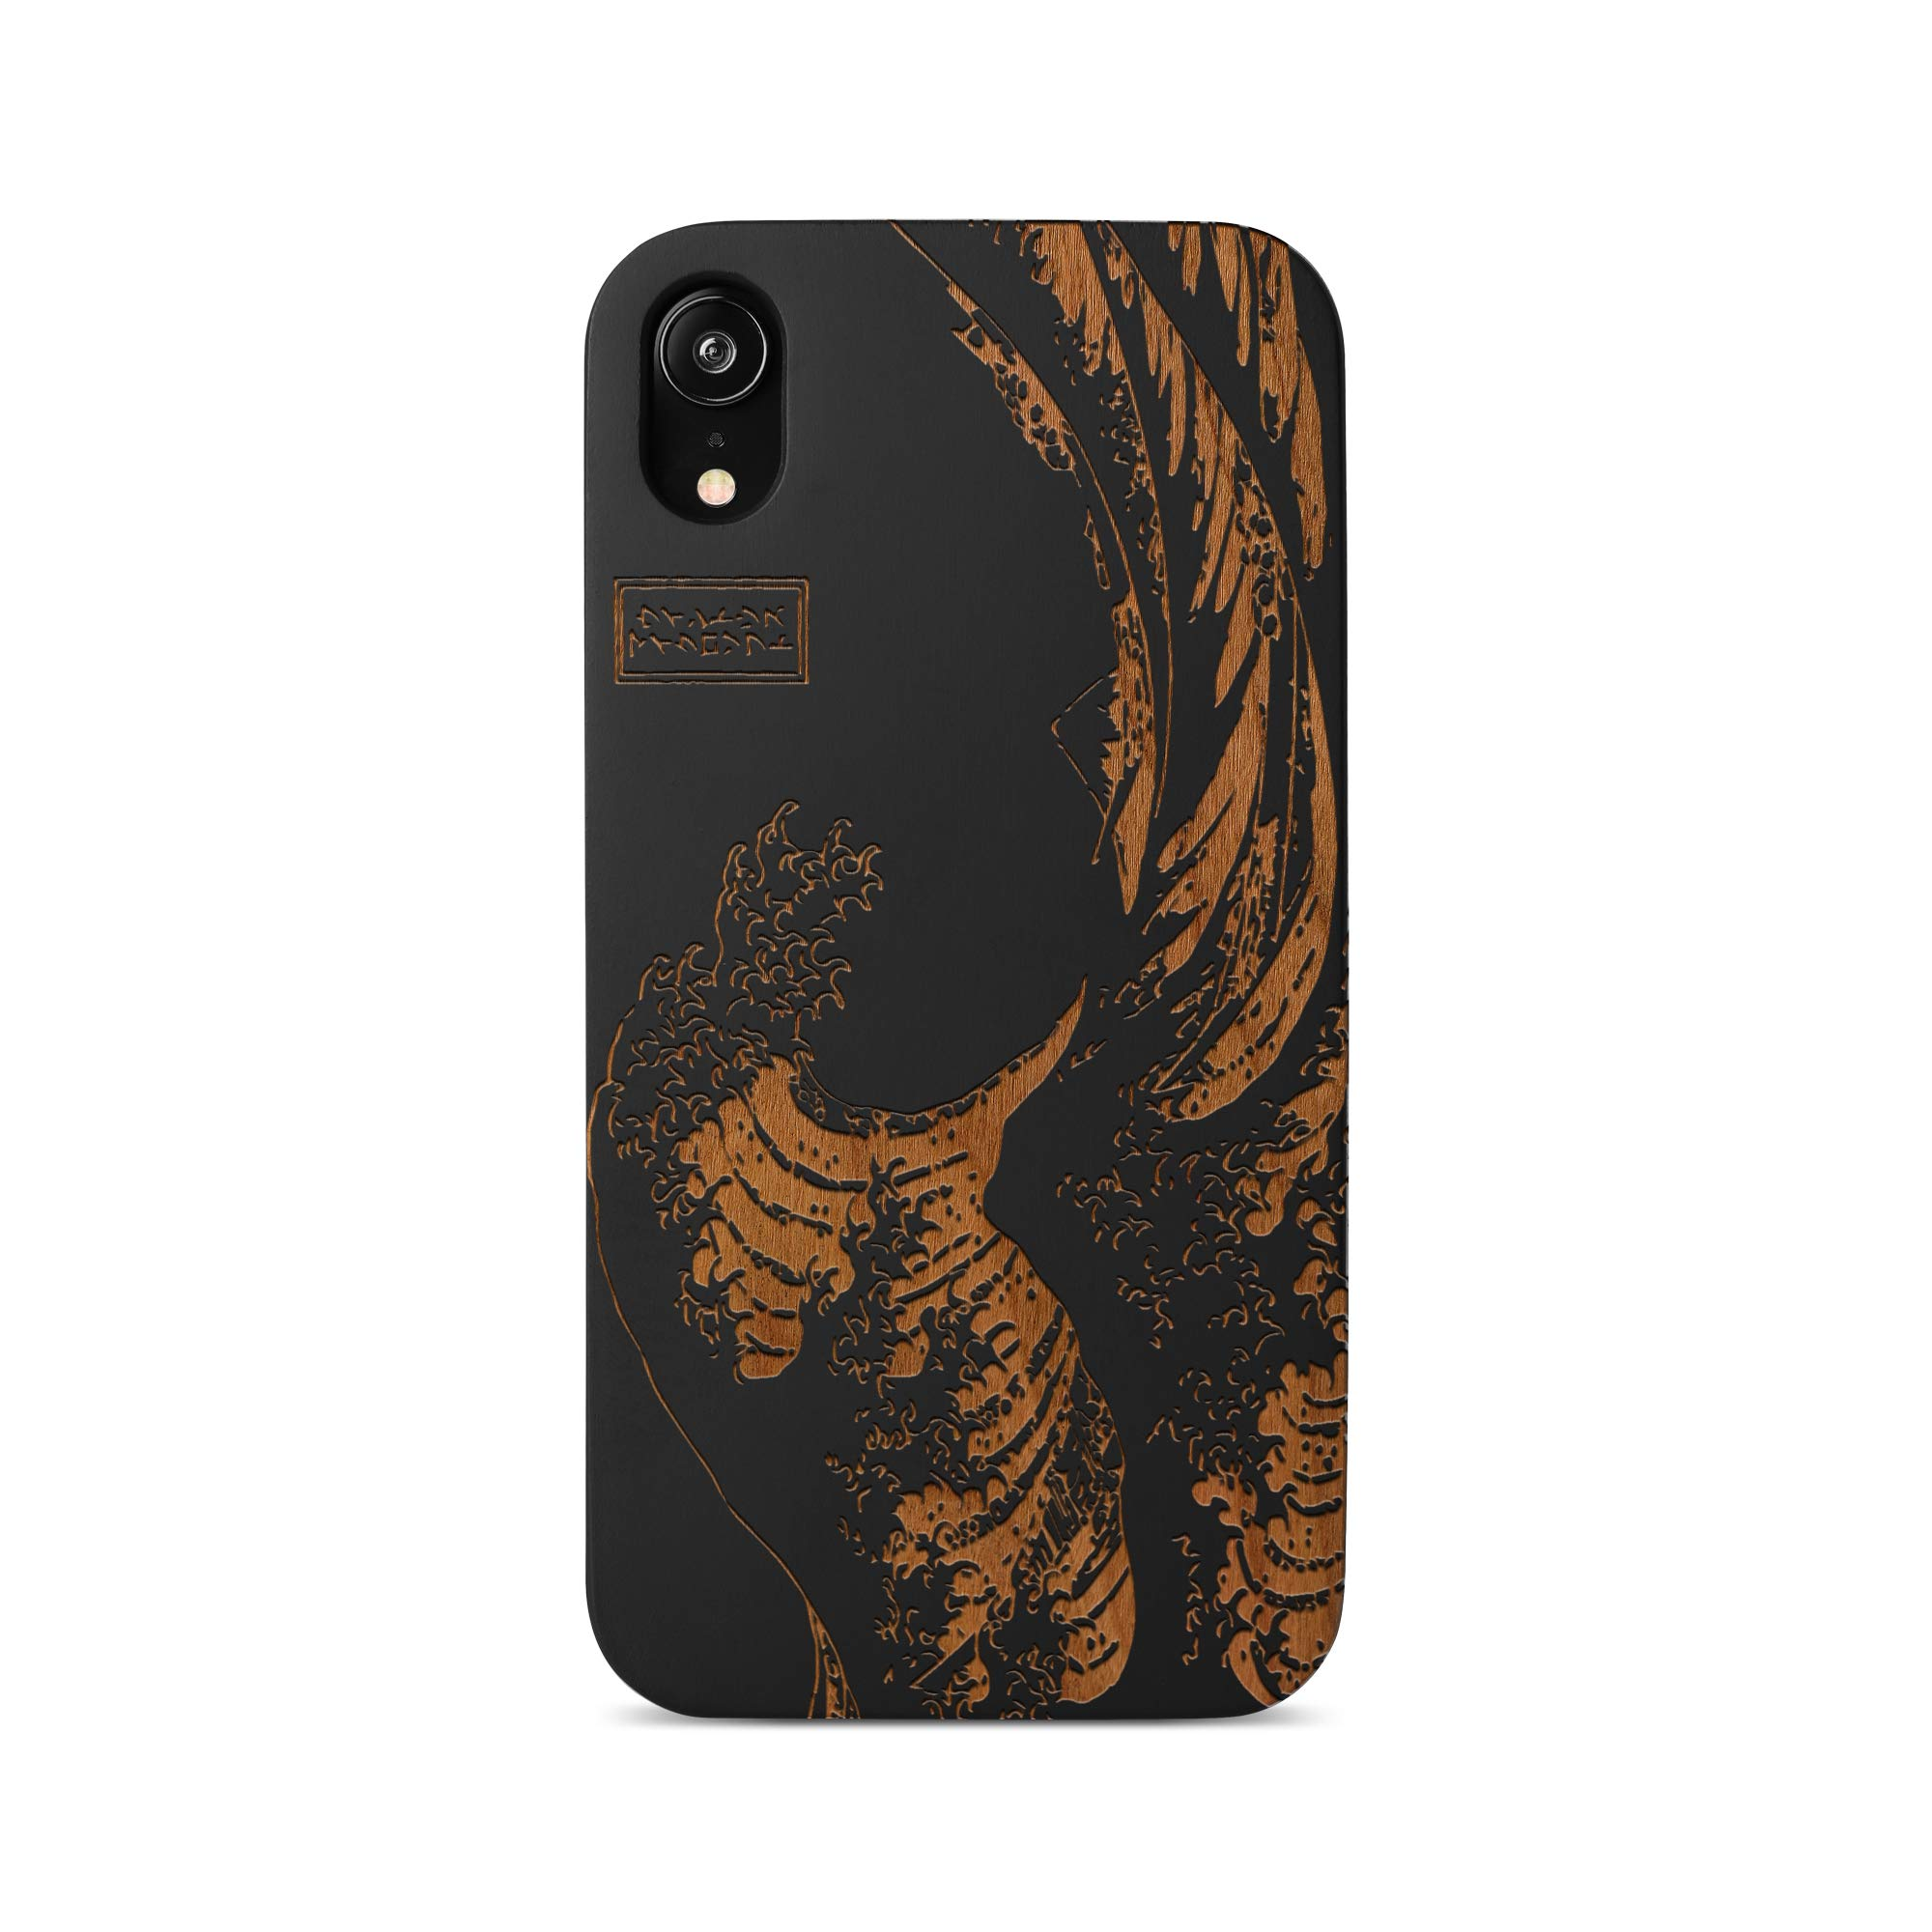 iPhone 11 Pro Case by Case Yard Fit for iPhone 11 Pro 5.8-Inch [ 2019 Release ] Shock-Absorption iPhone 11 Pro Phone Cover Wood Black iPhone 11 Pro Cases Great Wave